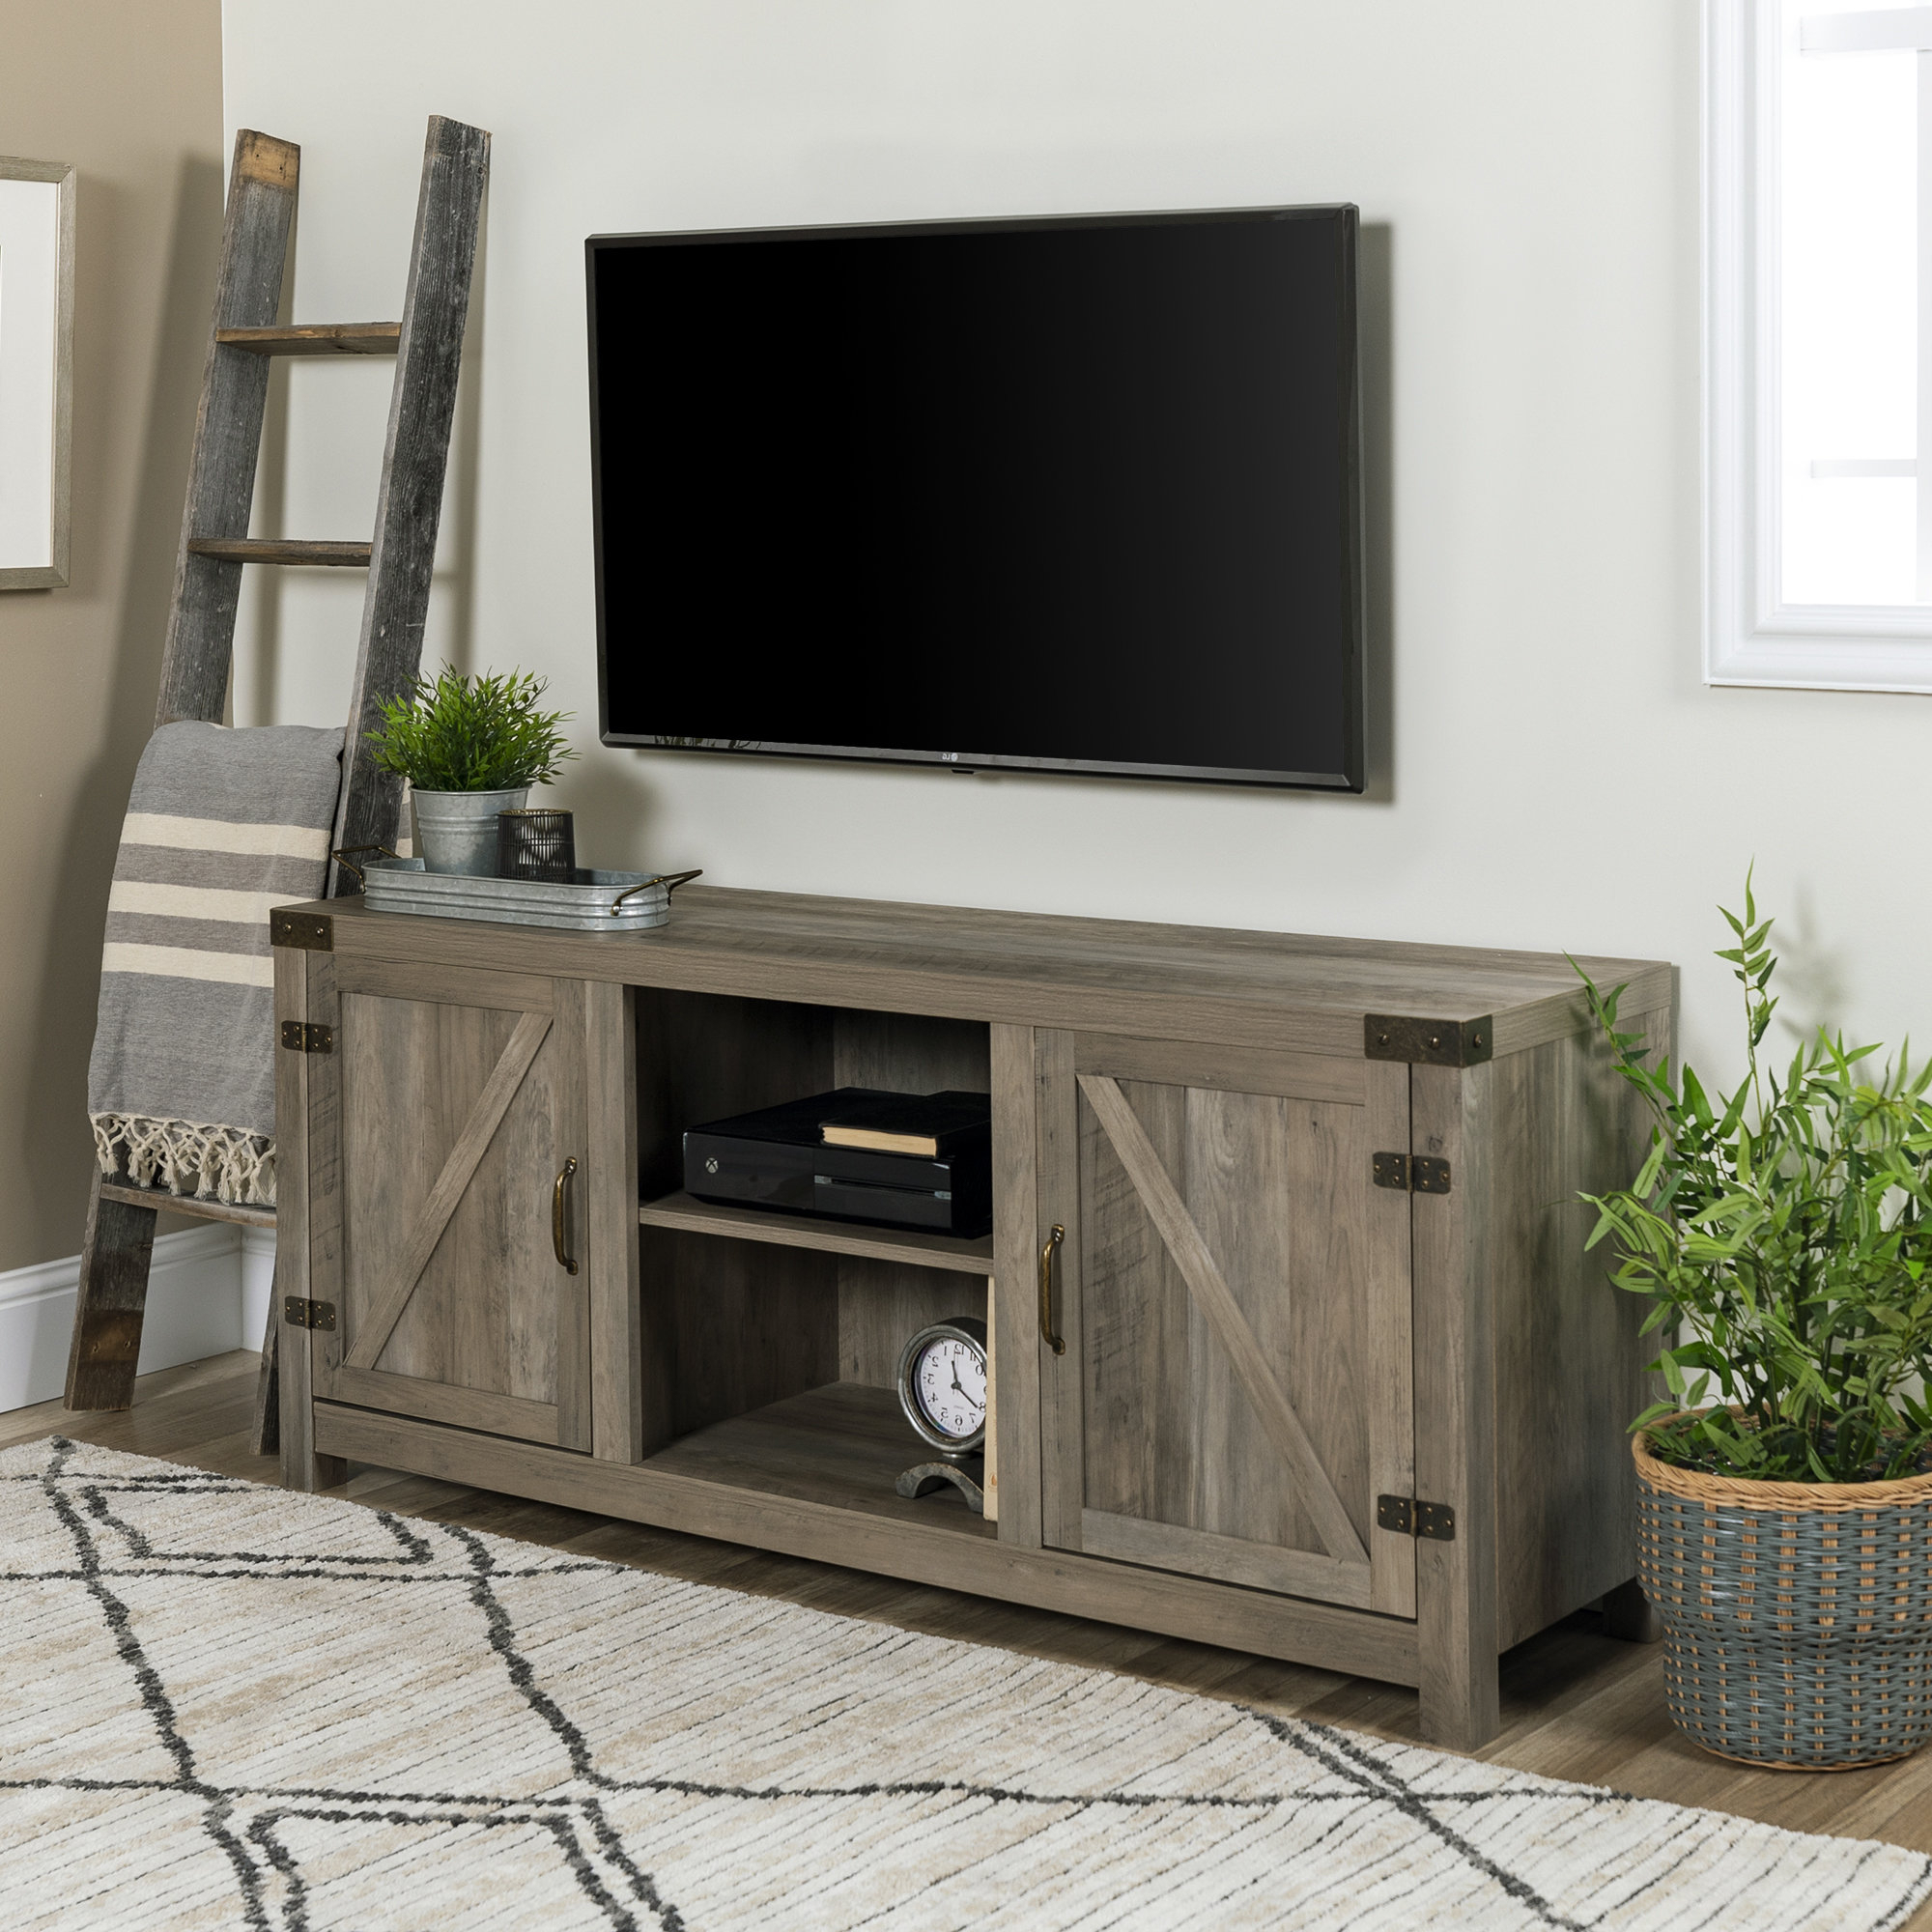 Most Popular Sinclair White 54 Inch Tv Stands Throughout Tv Stands & Entertainment Centers You'll Love (Gallery 10 of 20)